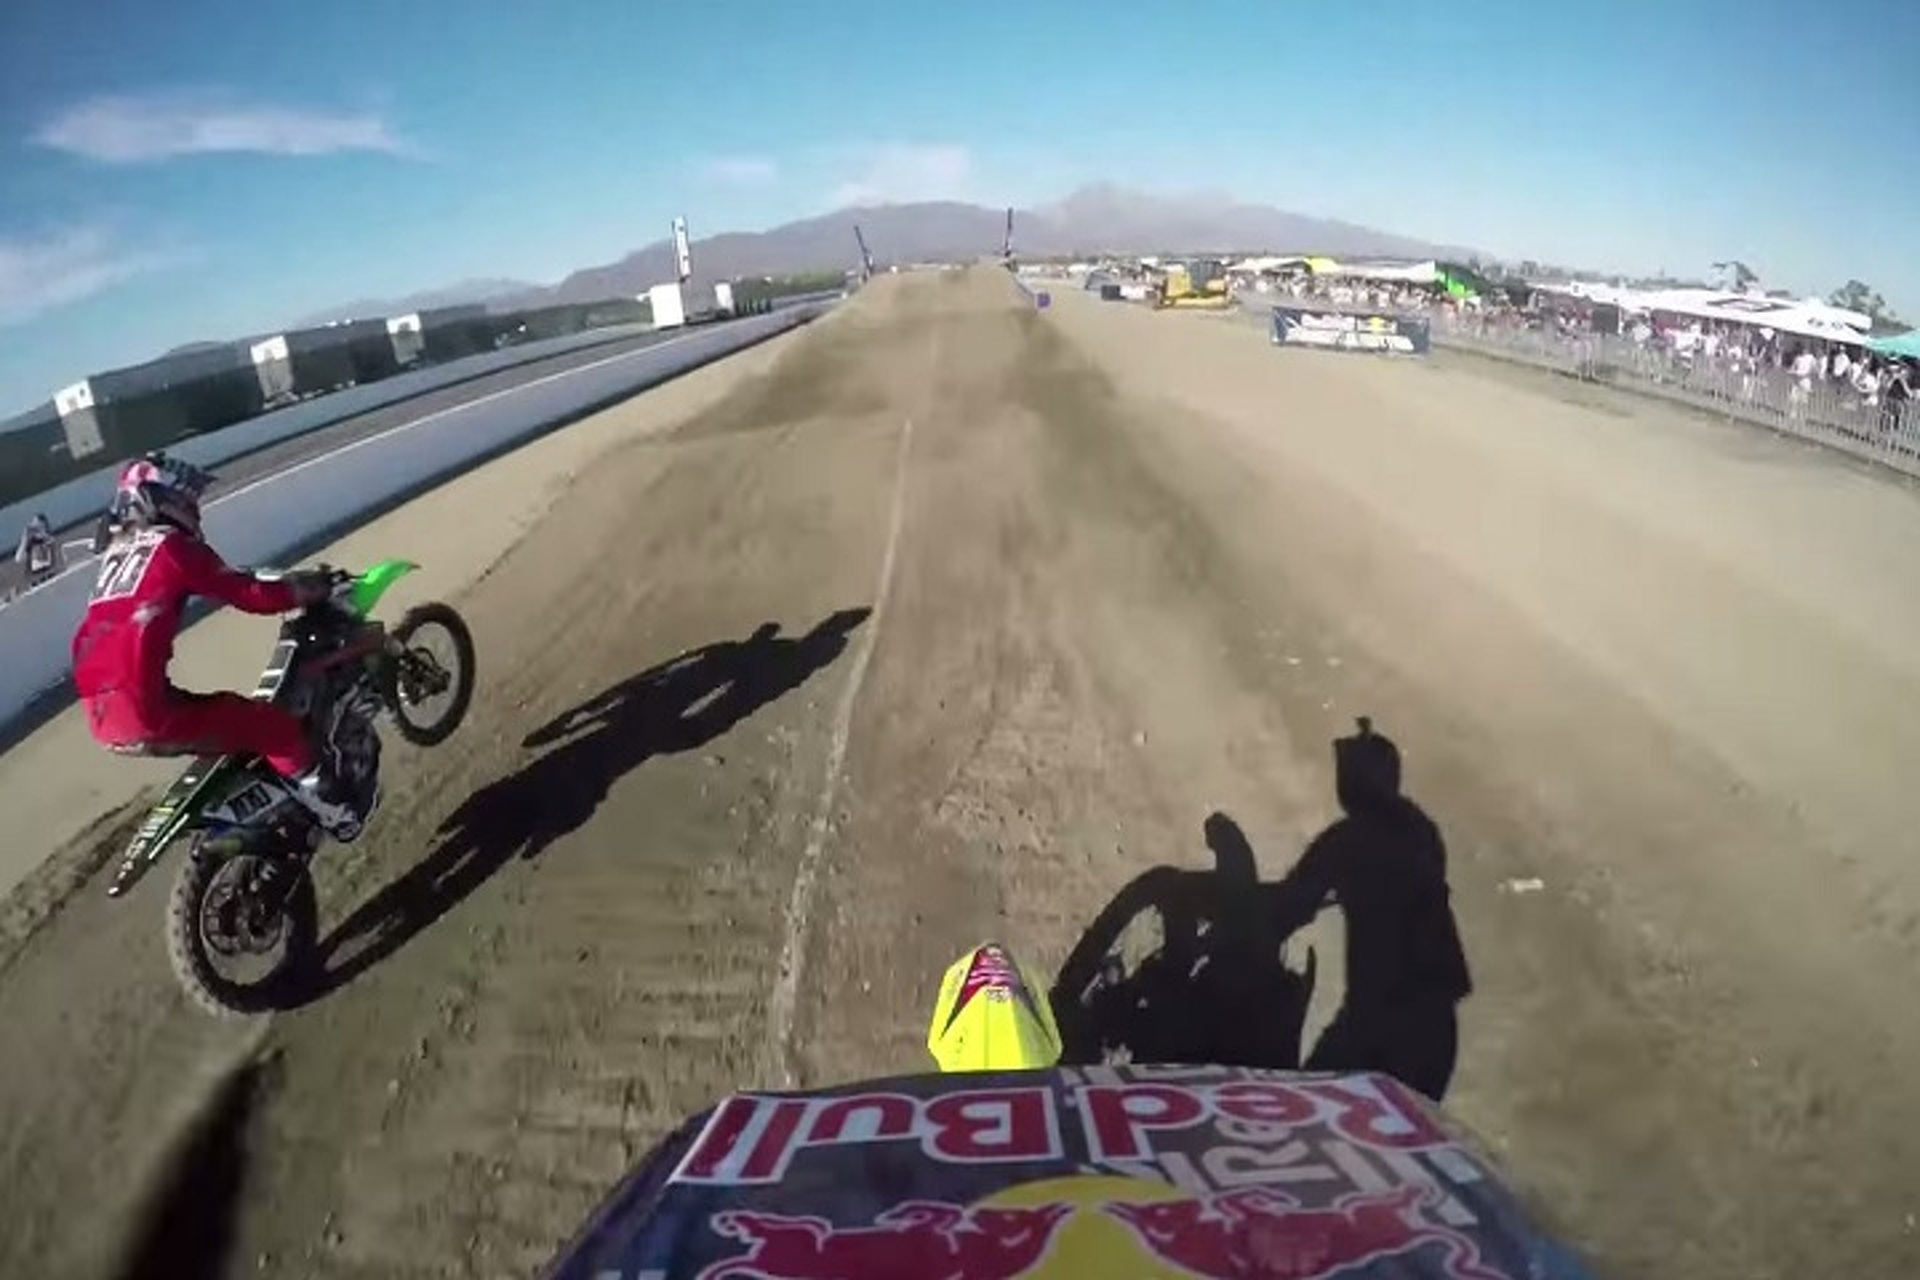 Watch Travis Pastrana's Incredible Dirt Bike Backflip from his POV